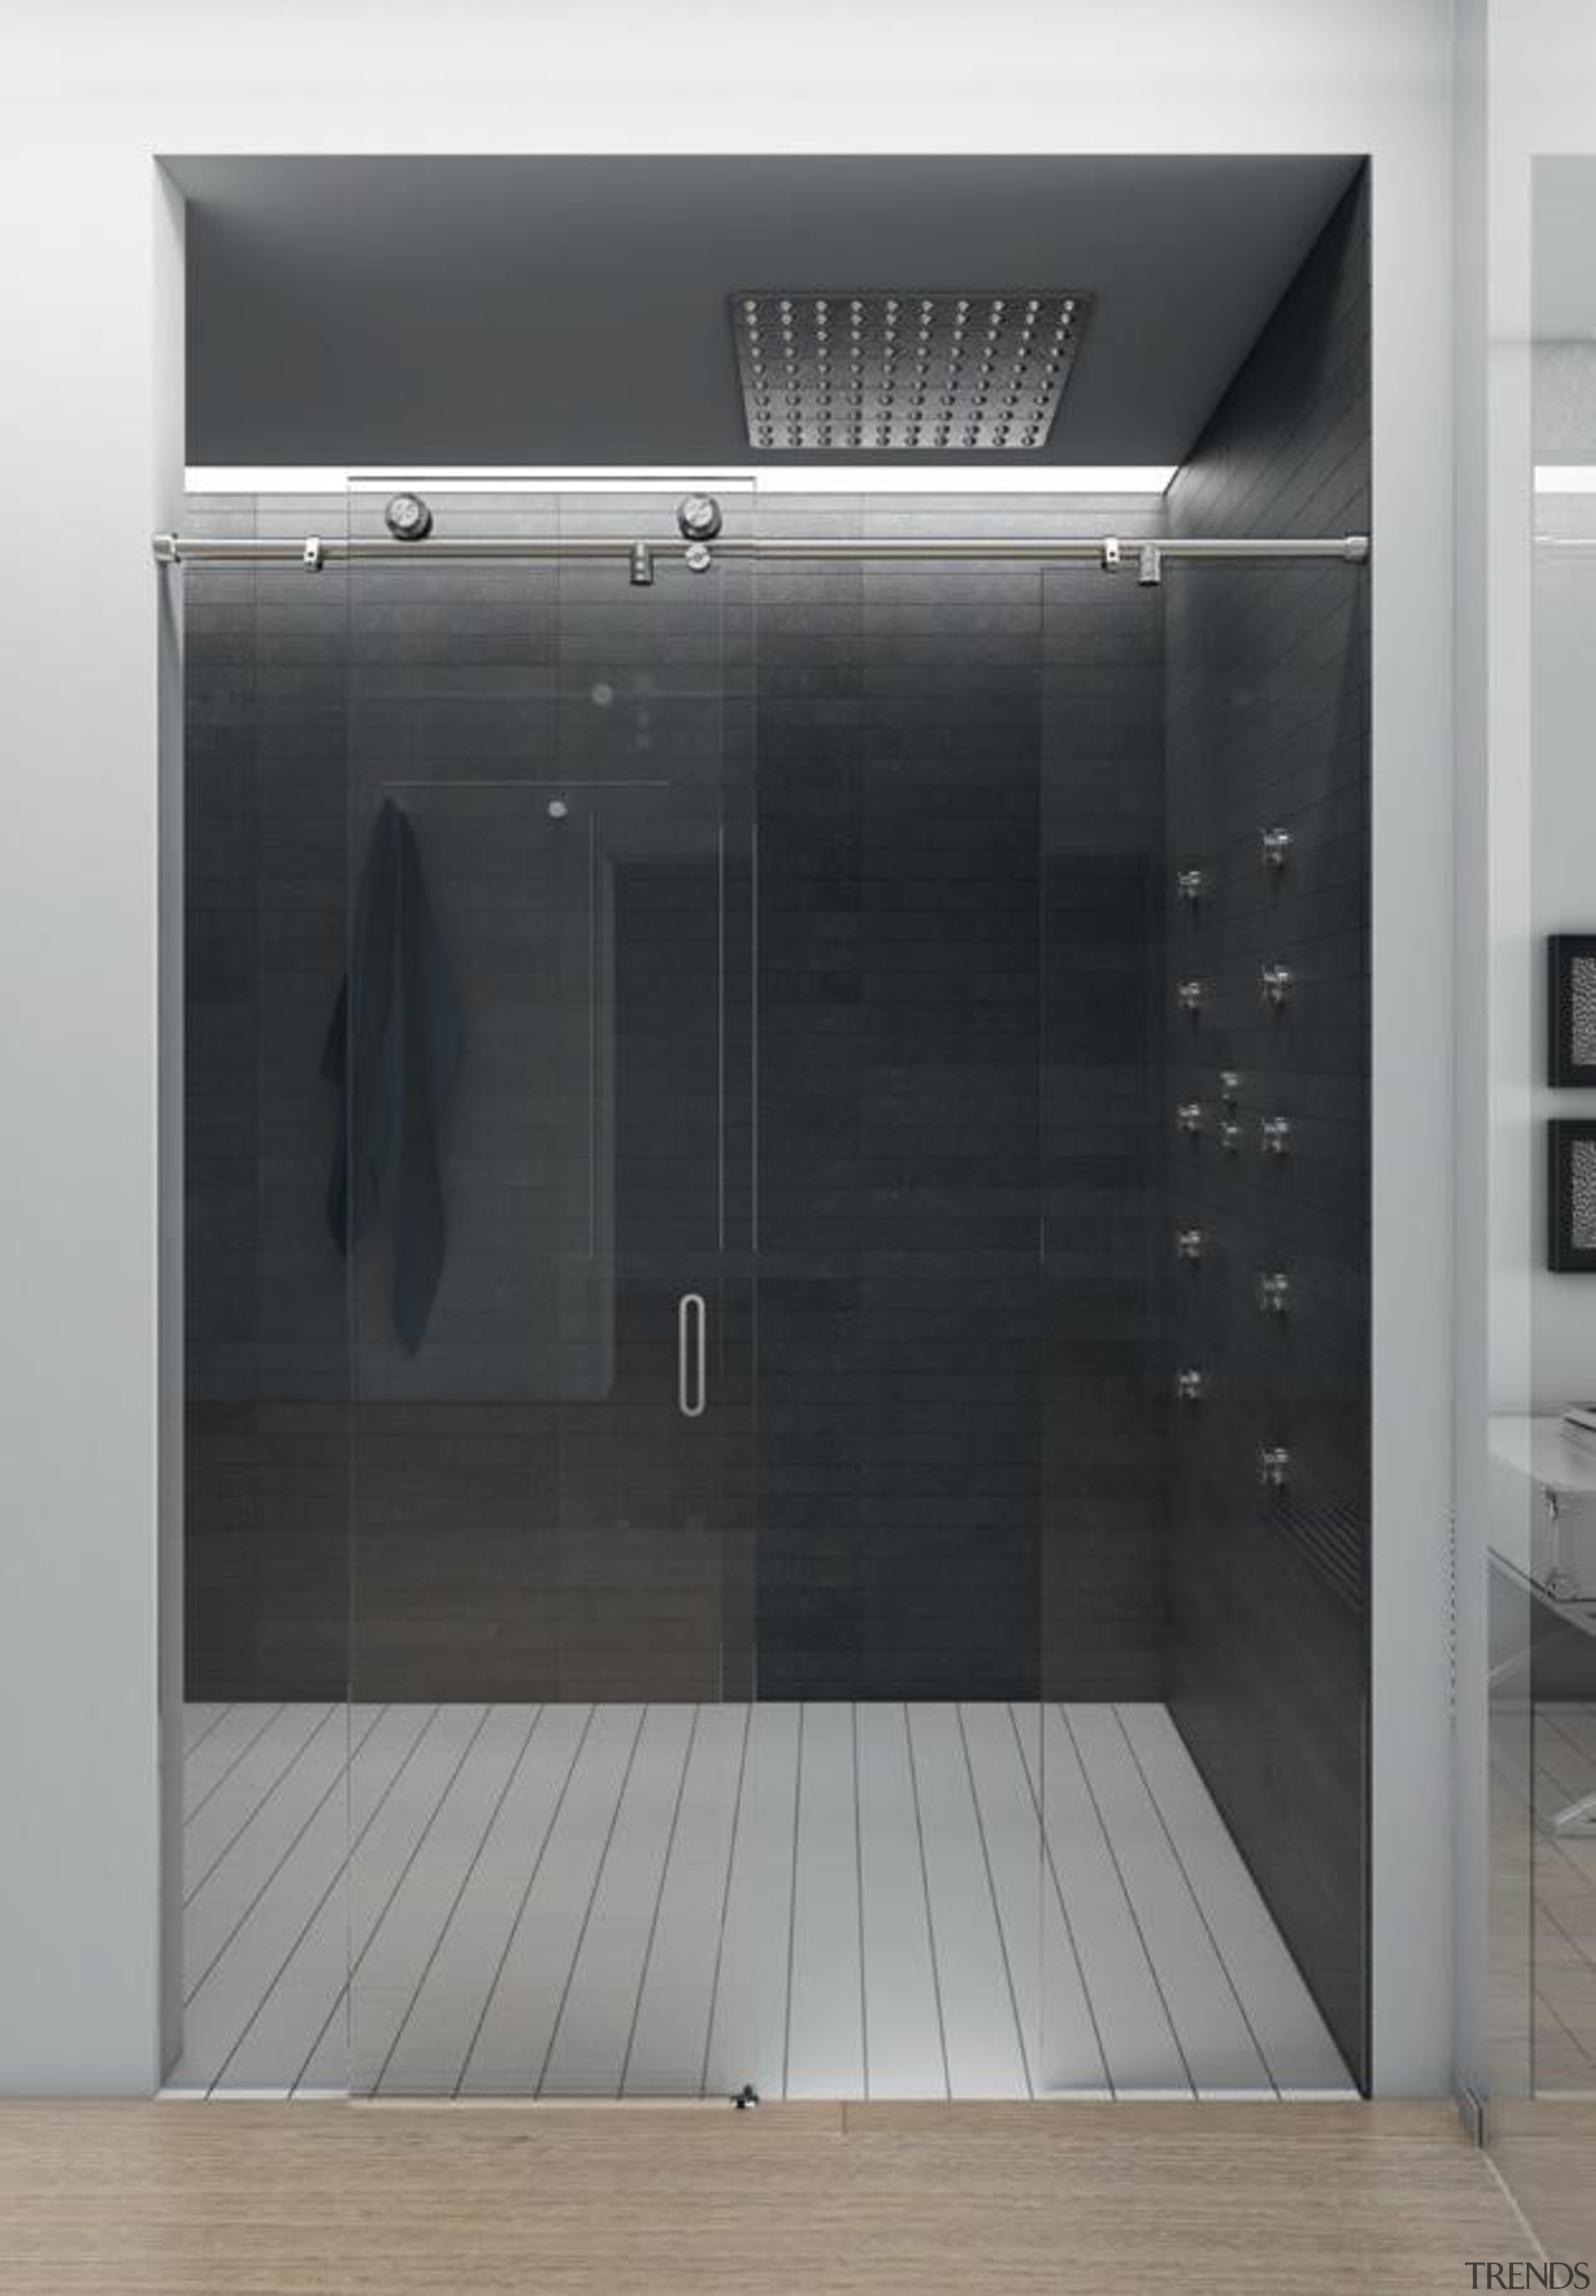 Mardeco International Ltd is an independent privately owned product design, gray, black